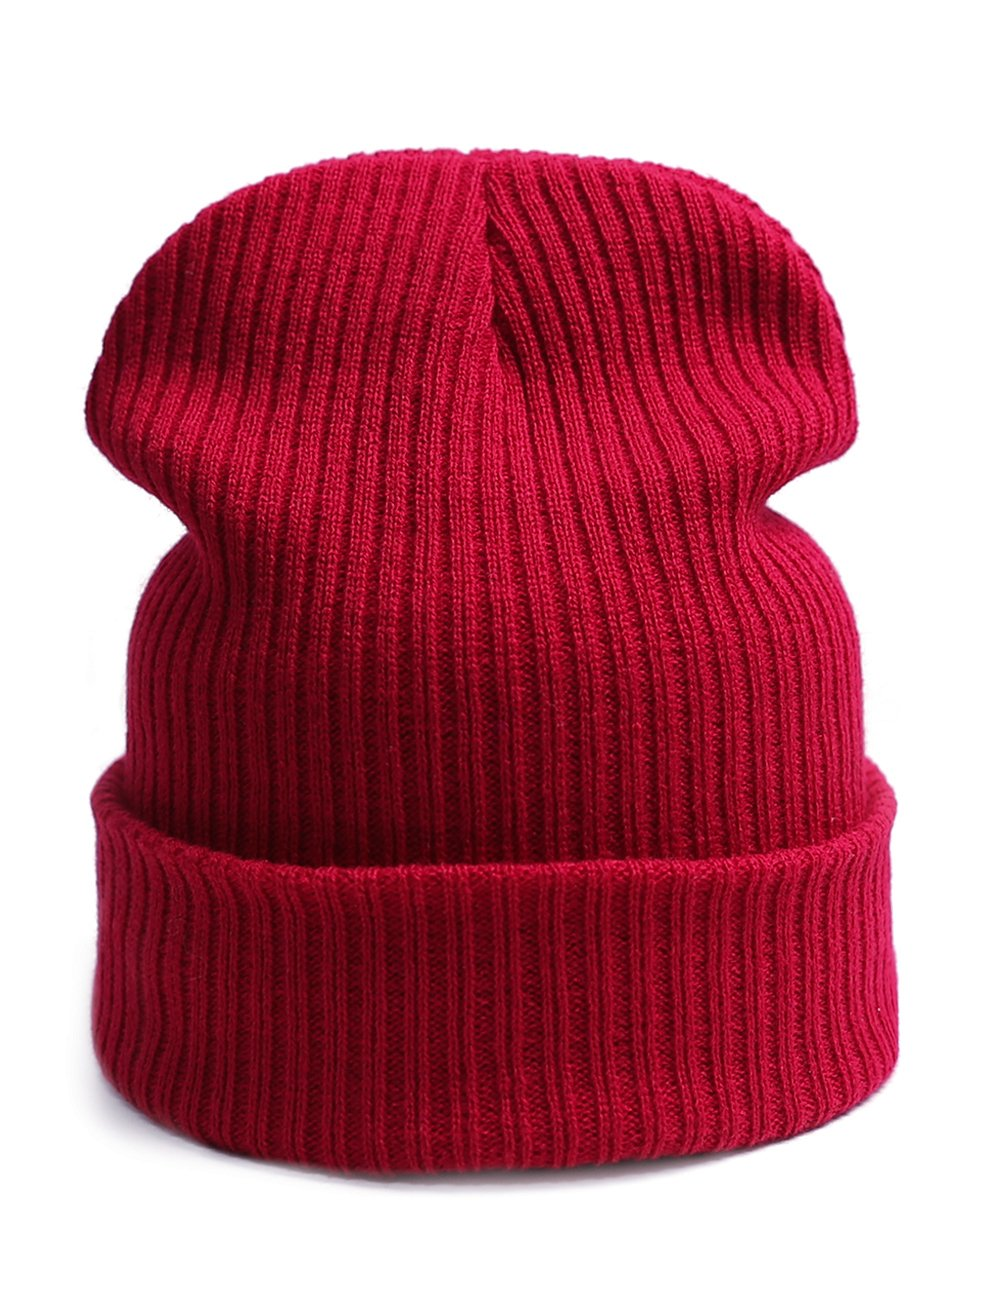 EVRFELAN Slouchy Beanie Casual Knitted Winter Hat Cuffed Plain Warm Cap Pure Color Simple Skull Cap for Women Men(Dark red)